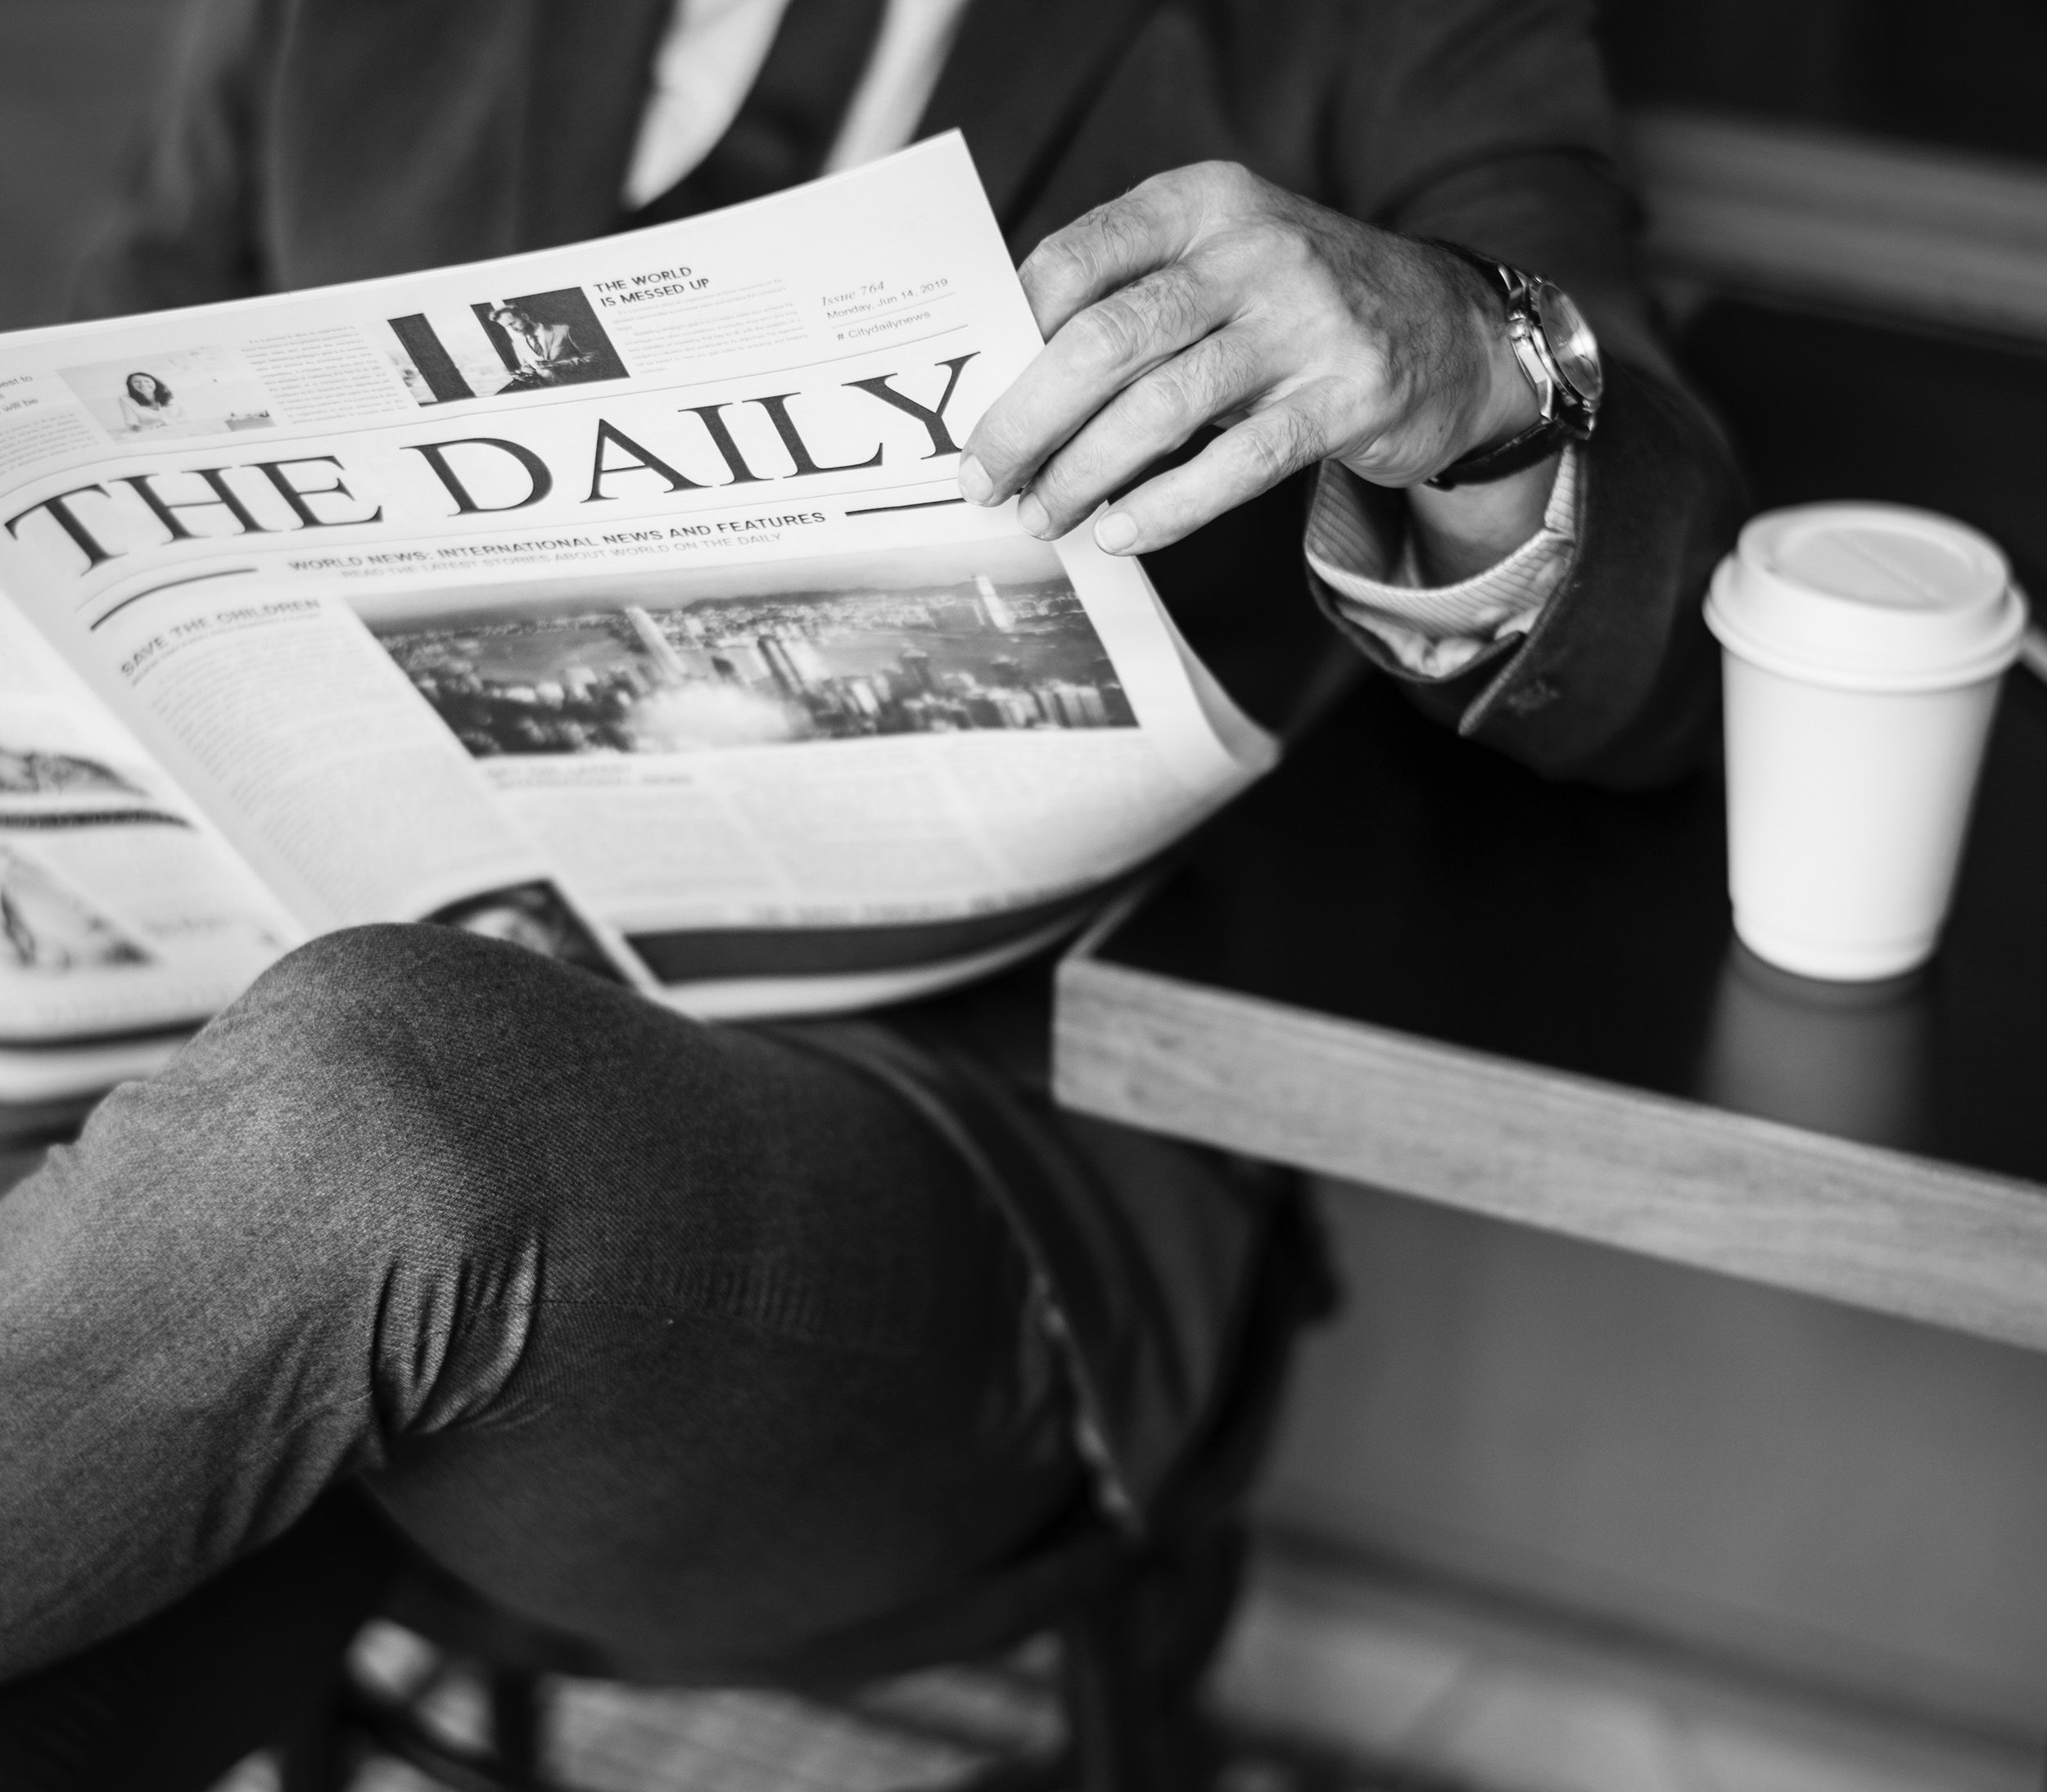 A man reads a newspaper on a bench with a takeaway coffee cup on a table beside him